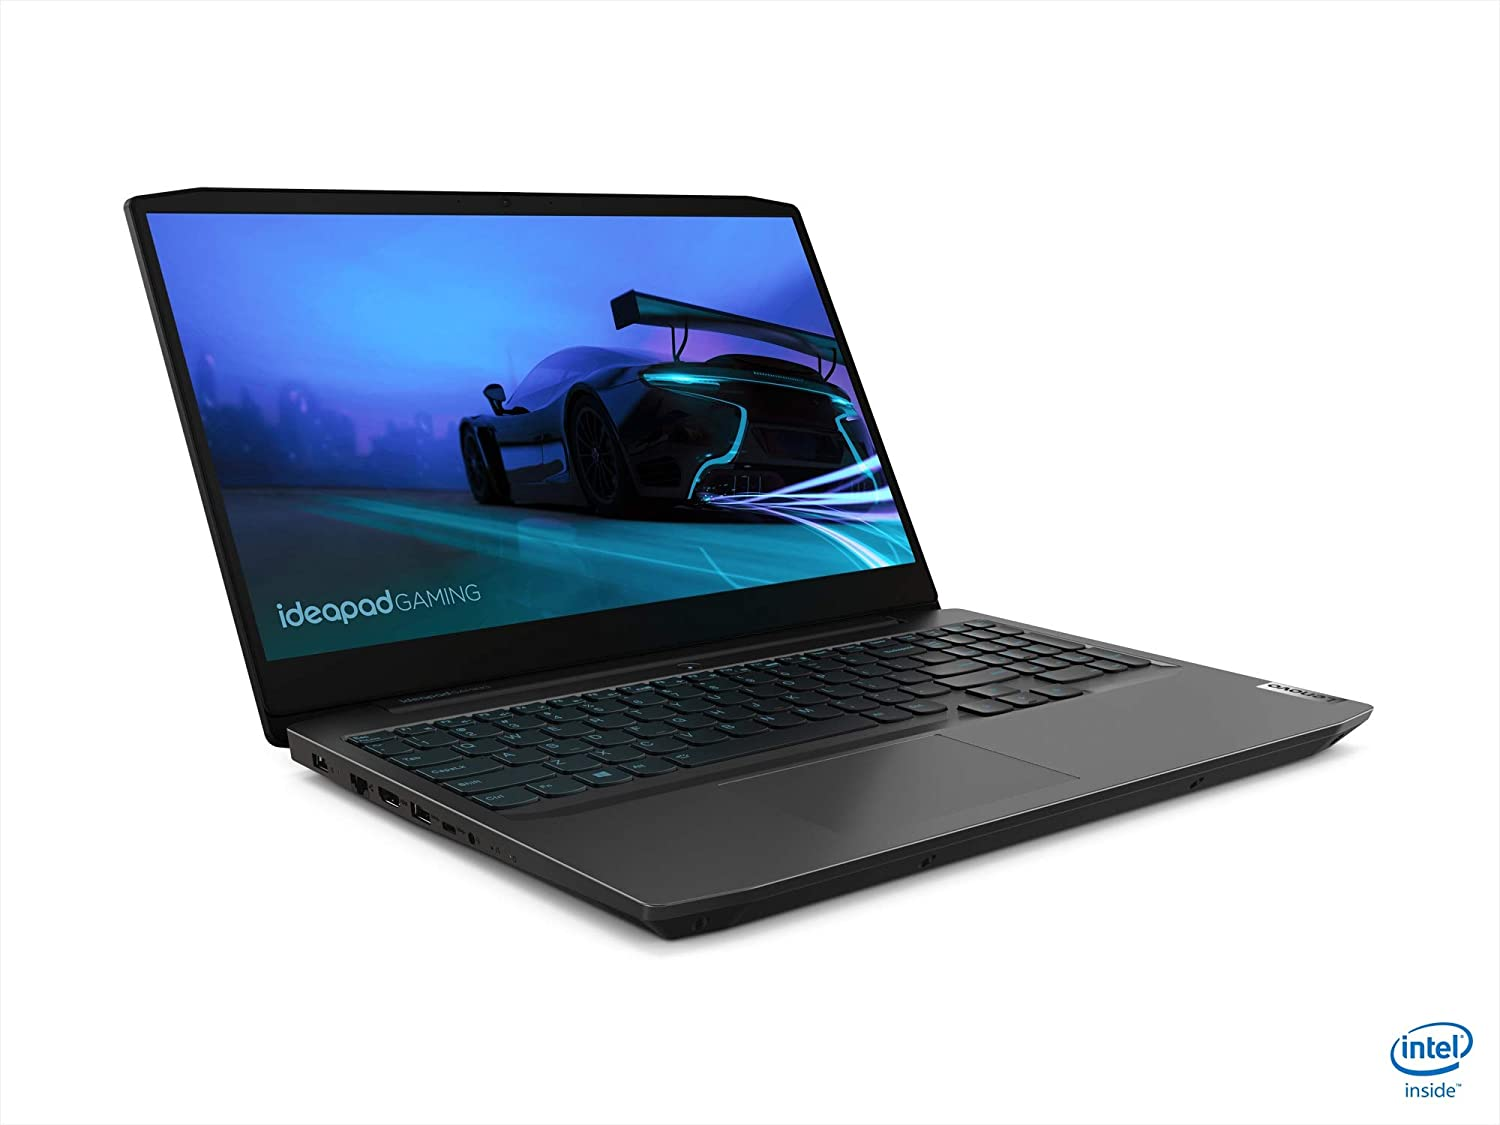 "Lenovo IdeaPad Gaming 3 15.6"" Gaming Laptop 120Hz i5-10300H 8GB RAM 256GB SSD GTX 1650 4GB Onyx Black - 10th Gen i5-10300H Quad-Core - NVIDIA GeForce GTX 1650 4GB GDDR6 - 120Hz Refresh Rate - in-"